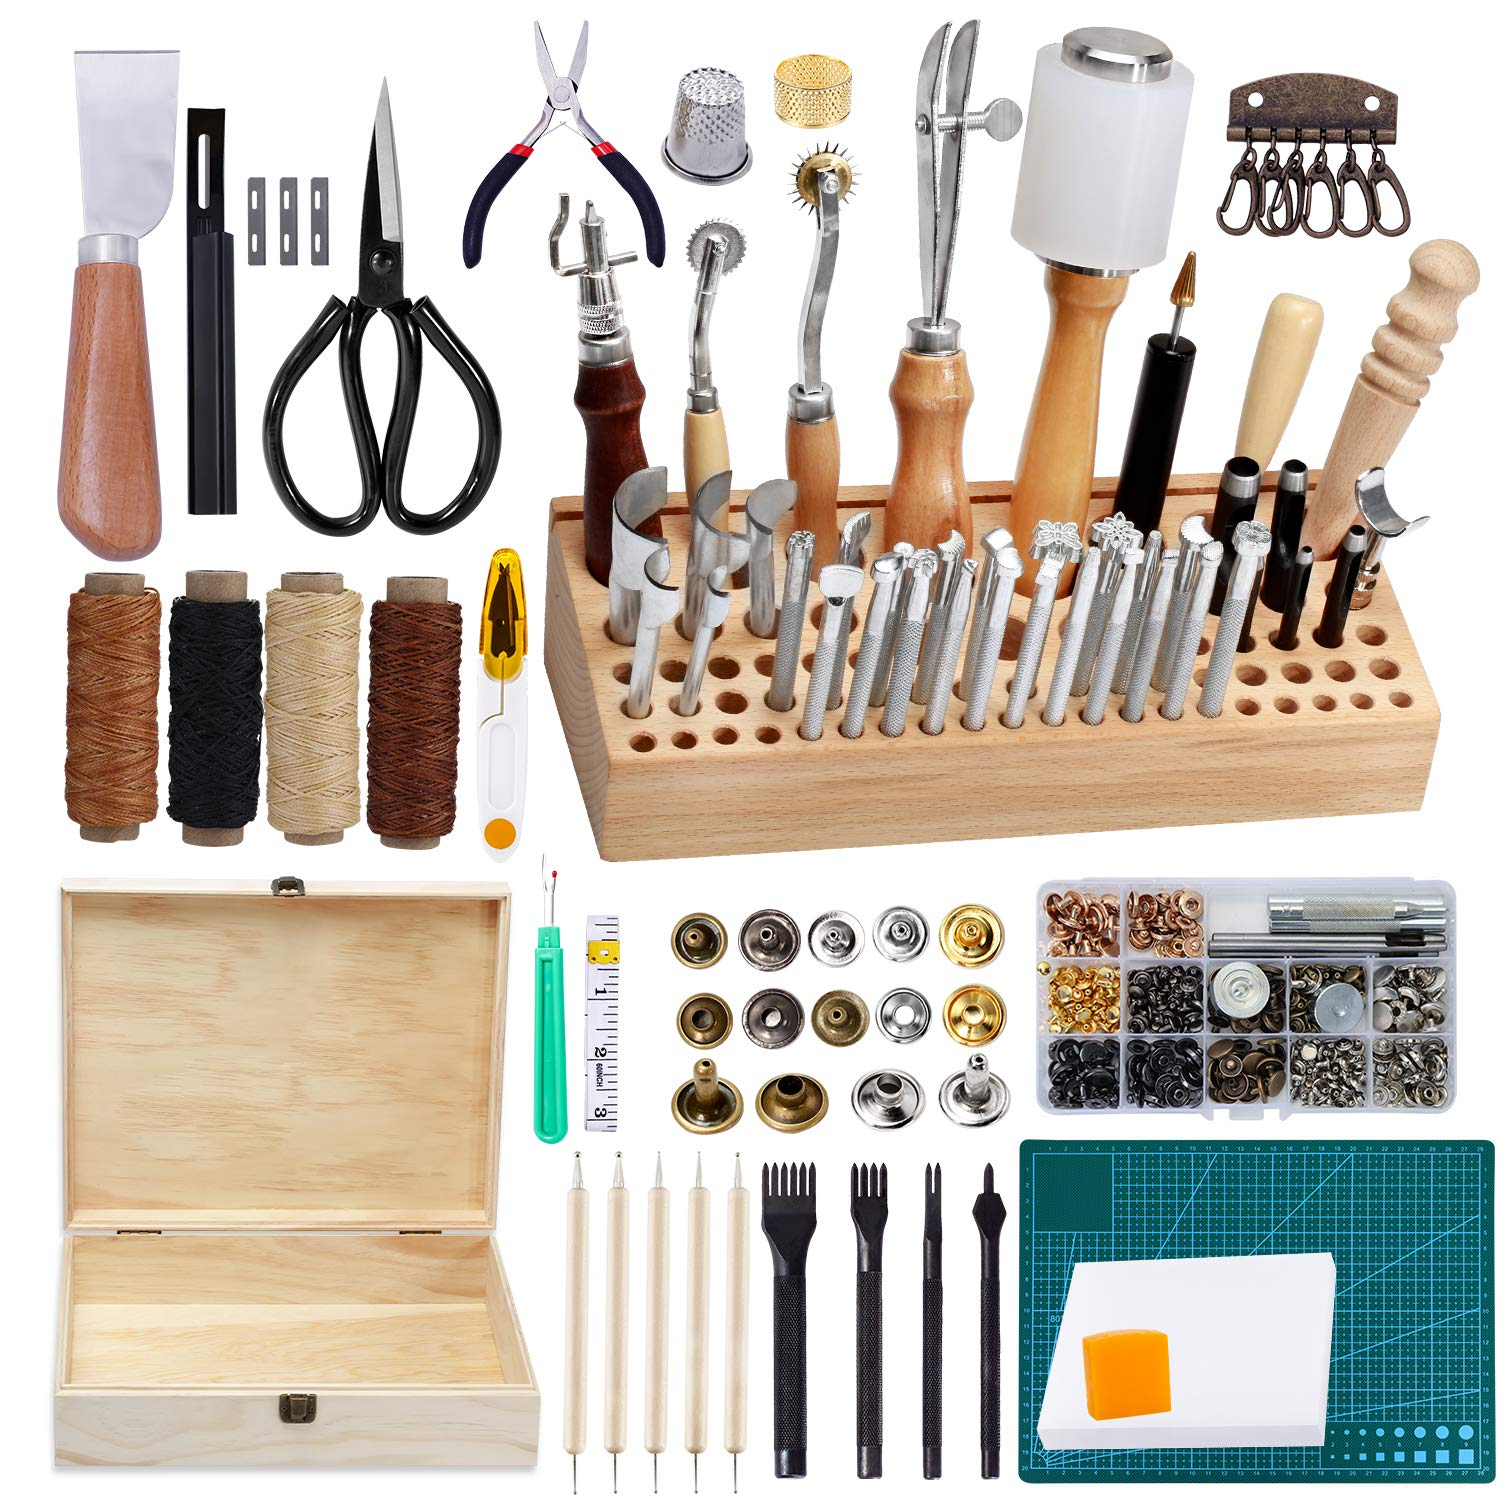 LEITIME 458 Piecs Leather Kits, Leather Working Tools, Leathercraft Tools and Supplies with Instruction, Tool Holder, Leather Stamps Set, Prong Punch, Hole Hollow Punch for Leather Craft Working